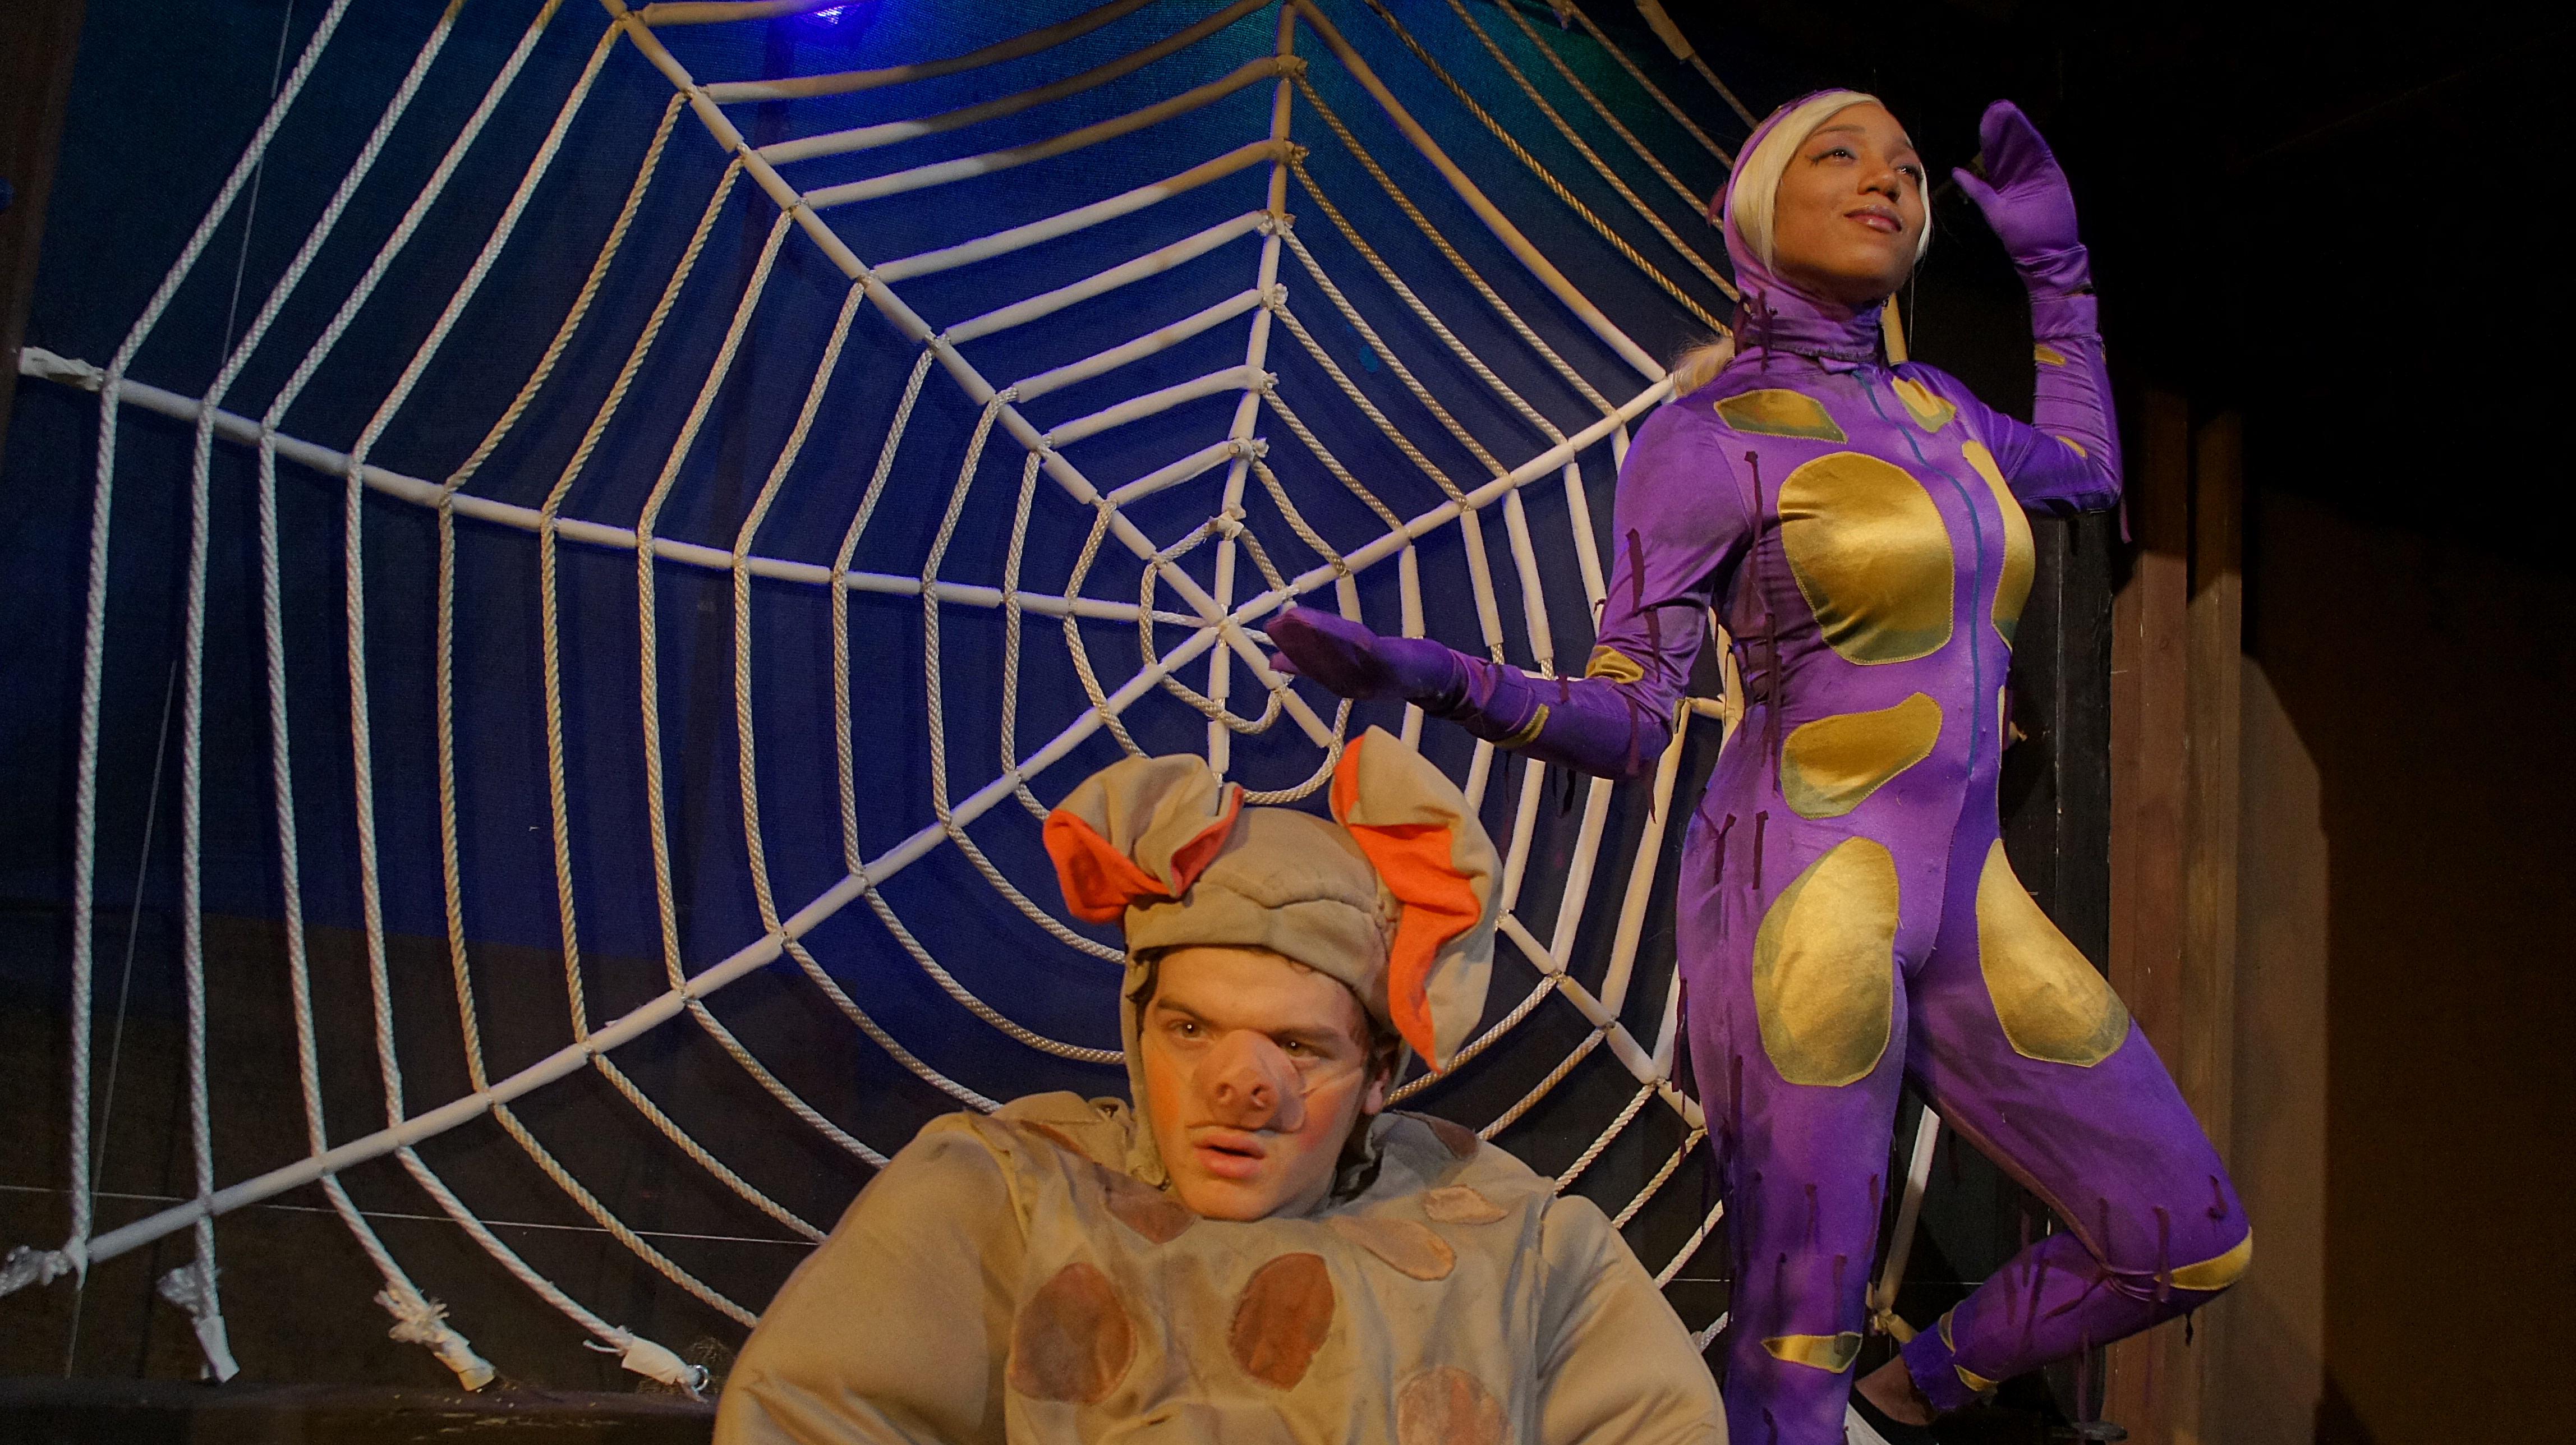 Photo of stage production of Charlotte's Web with large web and actor Dakota Nuttall in Wilbur the pig costume in front of actress Natasha Hawkins in Charlotte the spider costume.